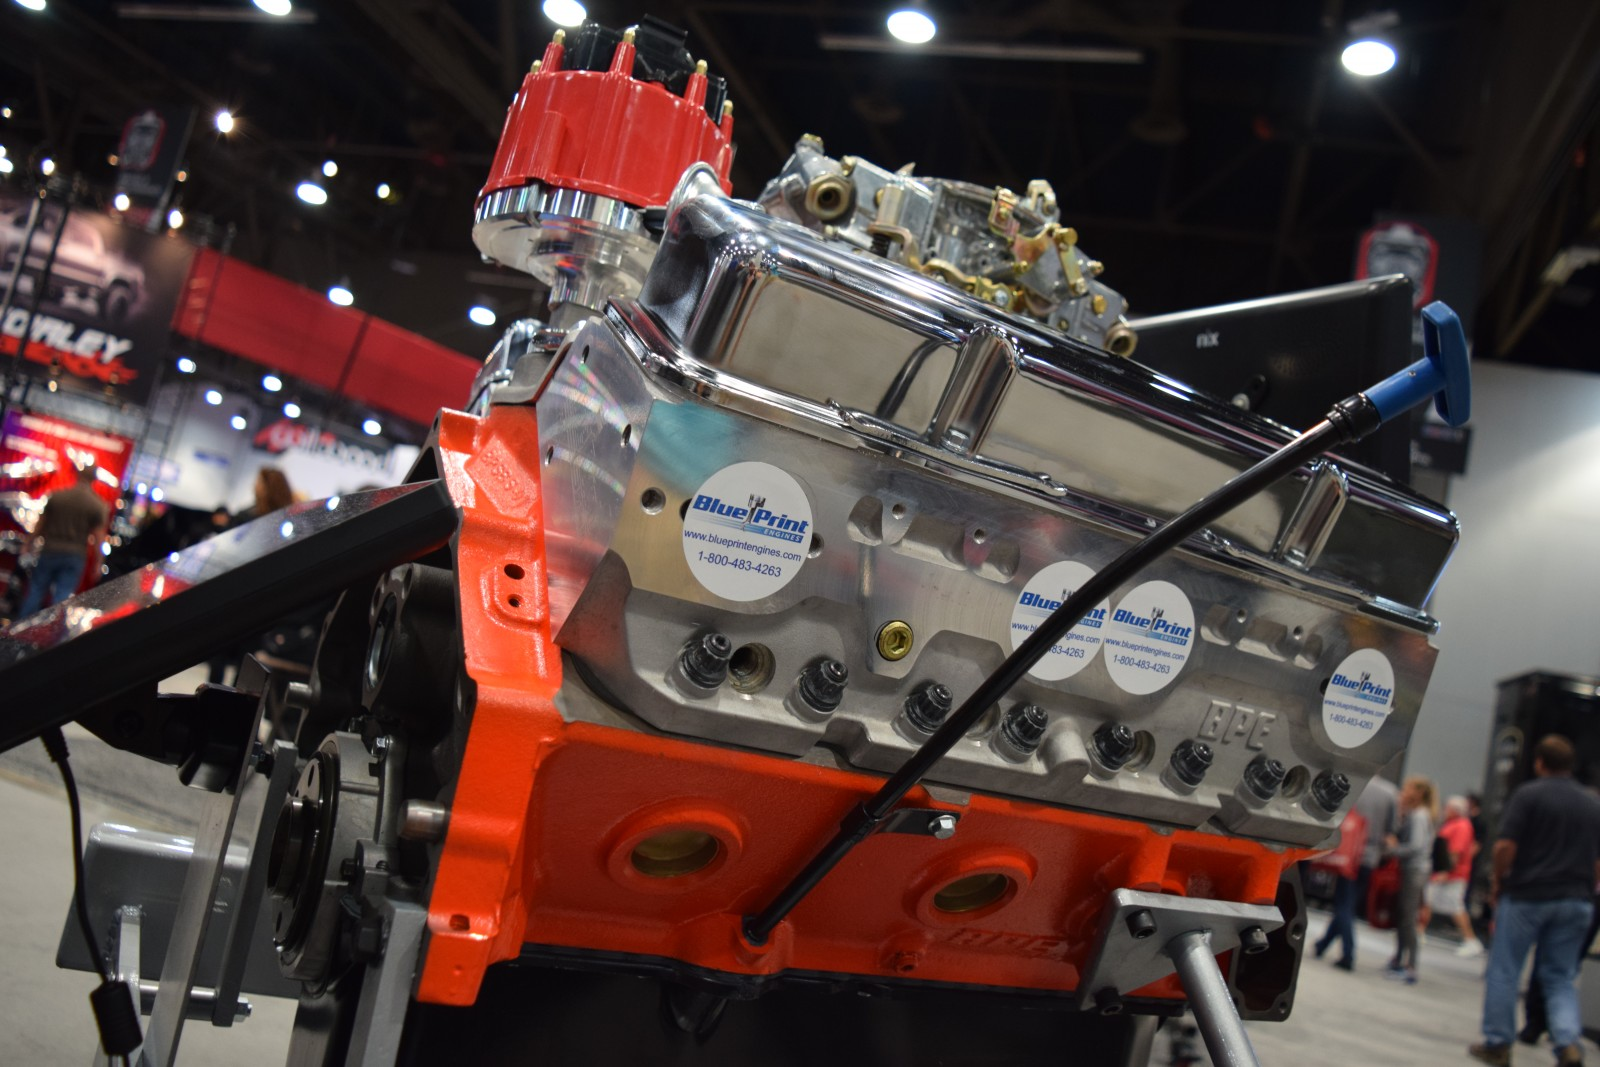 Blueprint engines to showcase new chevrolet 400 engine line at sema blueprint engines to showcase new chevrolet 400 engine line at sema 2015 onallcylinders malvernweather